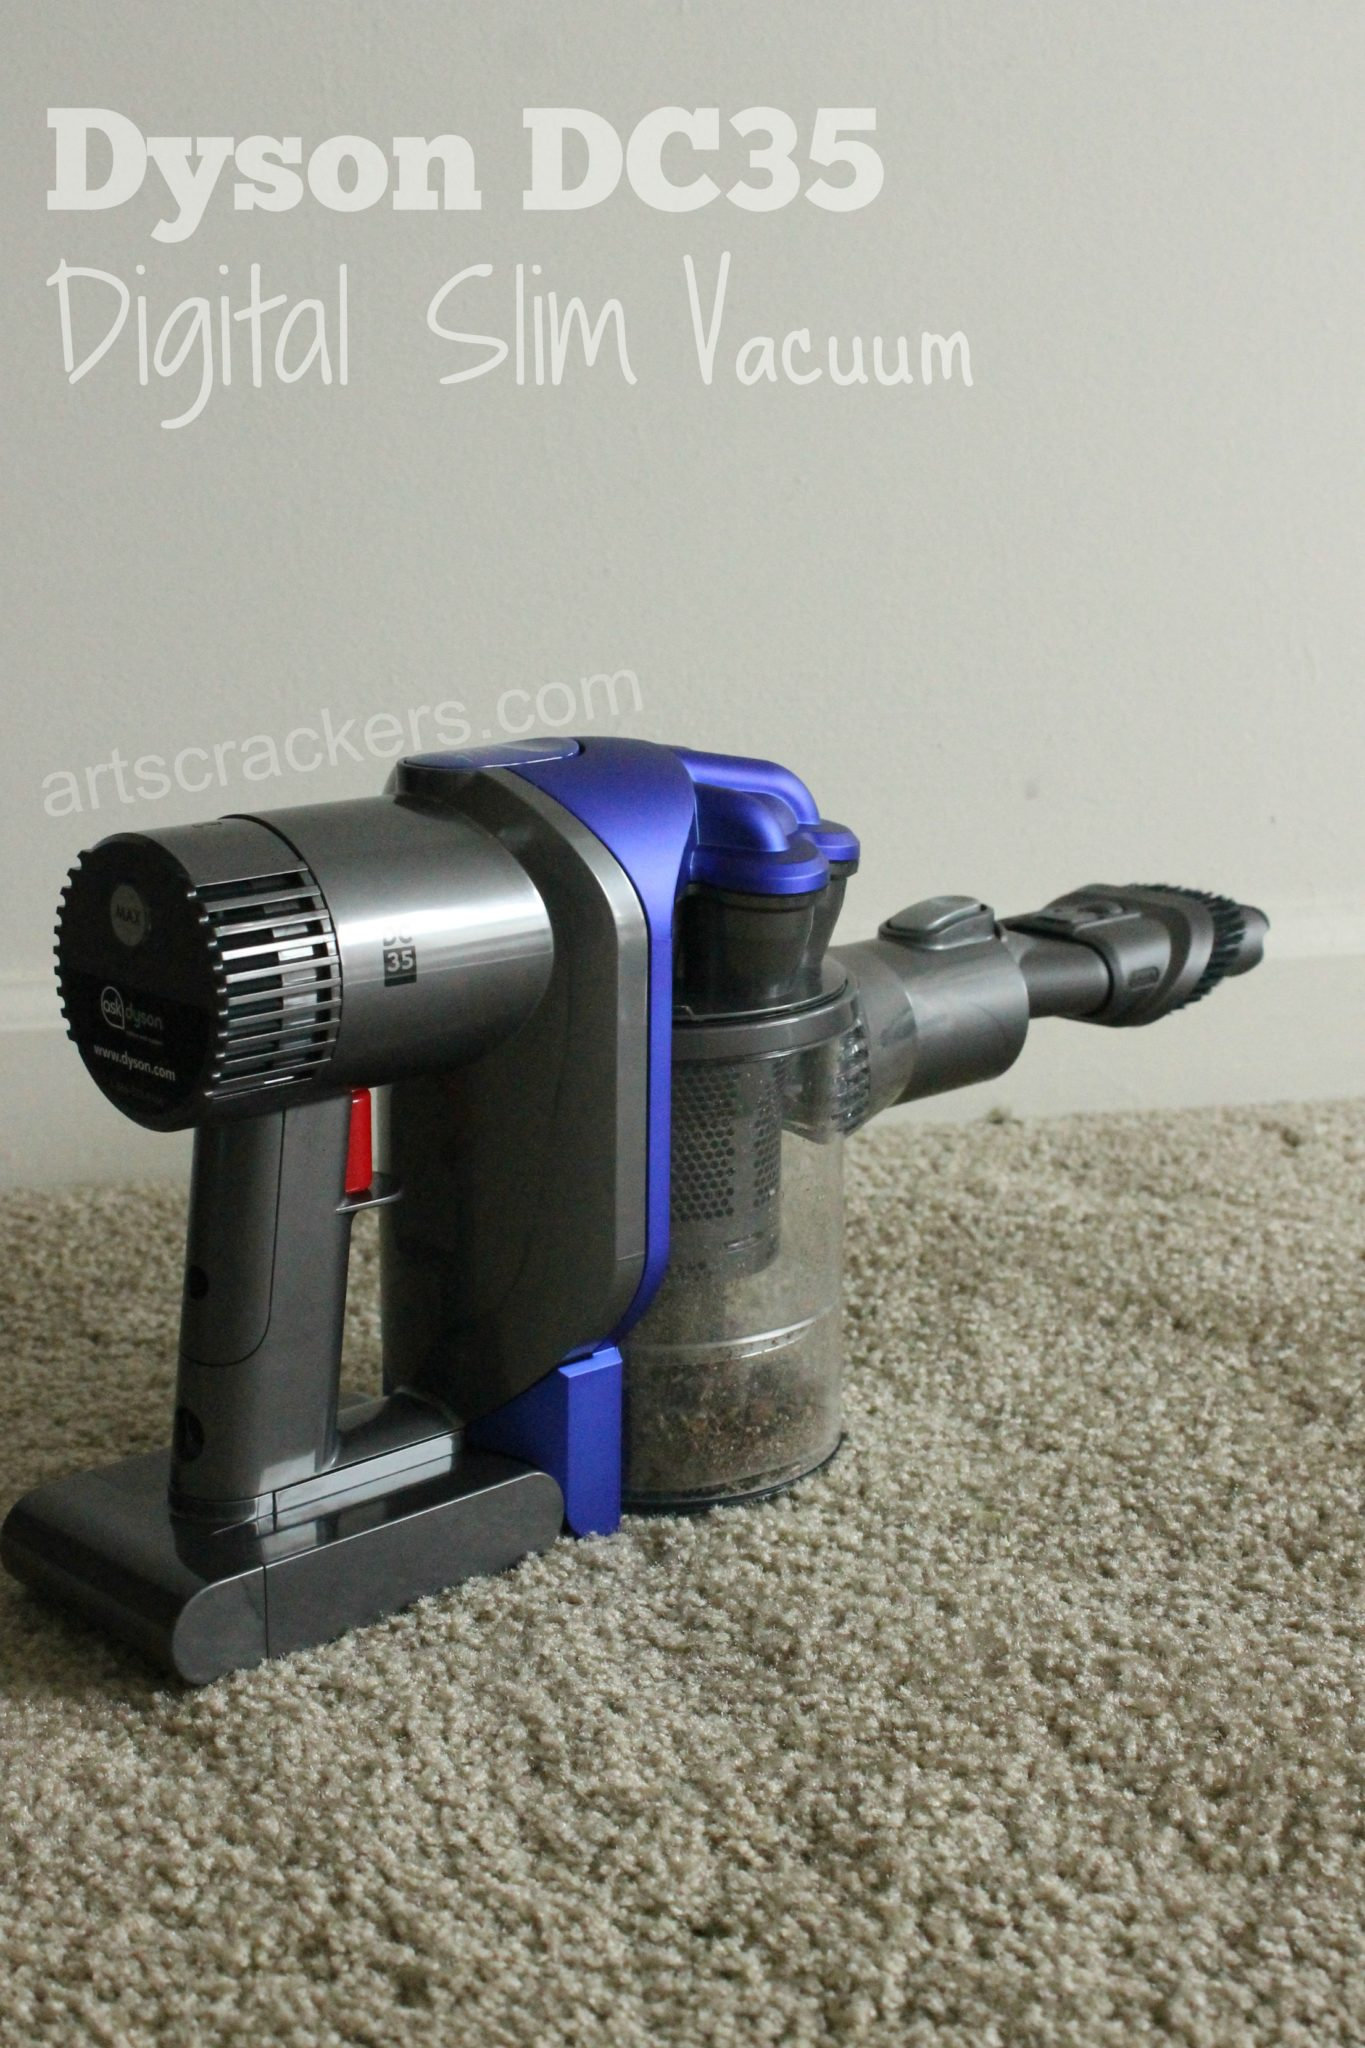 dyson dc35 digital slim cordless vacuum review. Black Bedroom Furniture Sets. Home Design Ideas